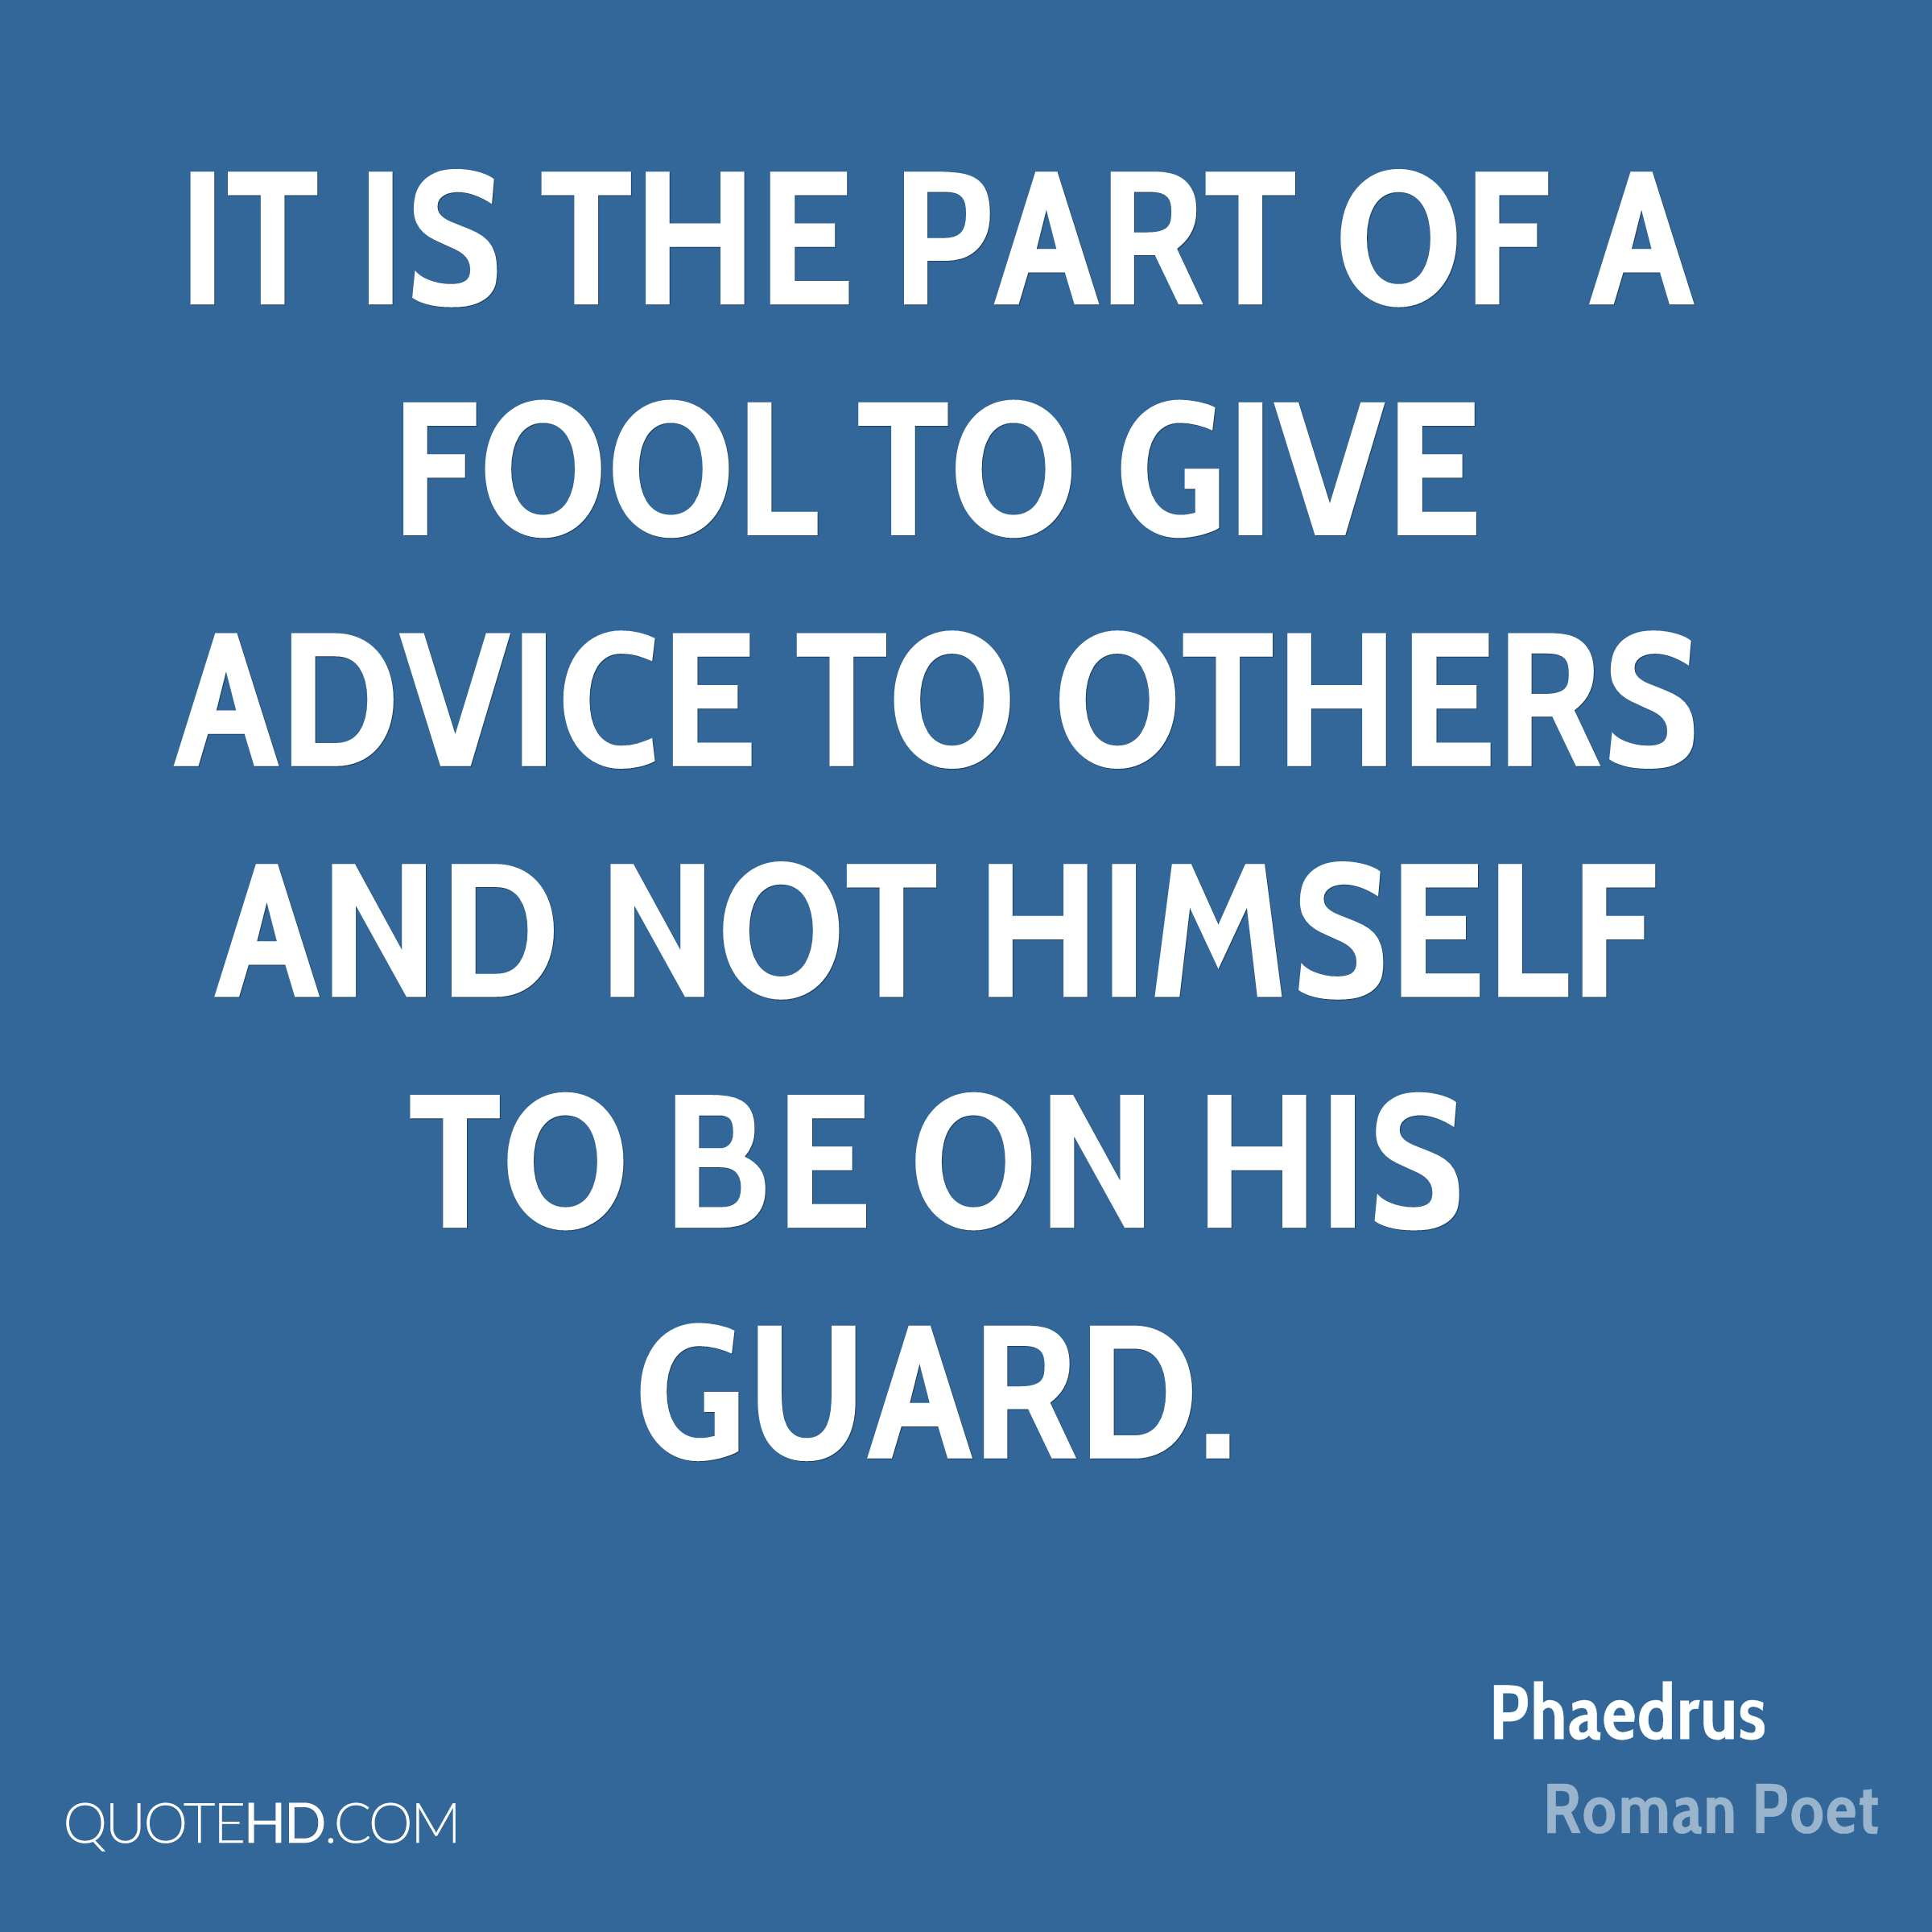 It is the part of a fool to give advice to others and not himself to be on his guard.